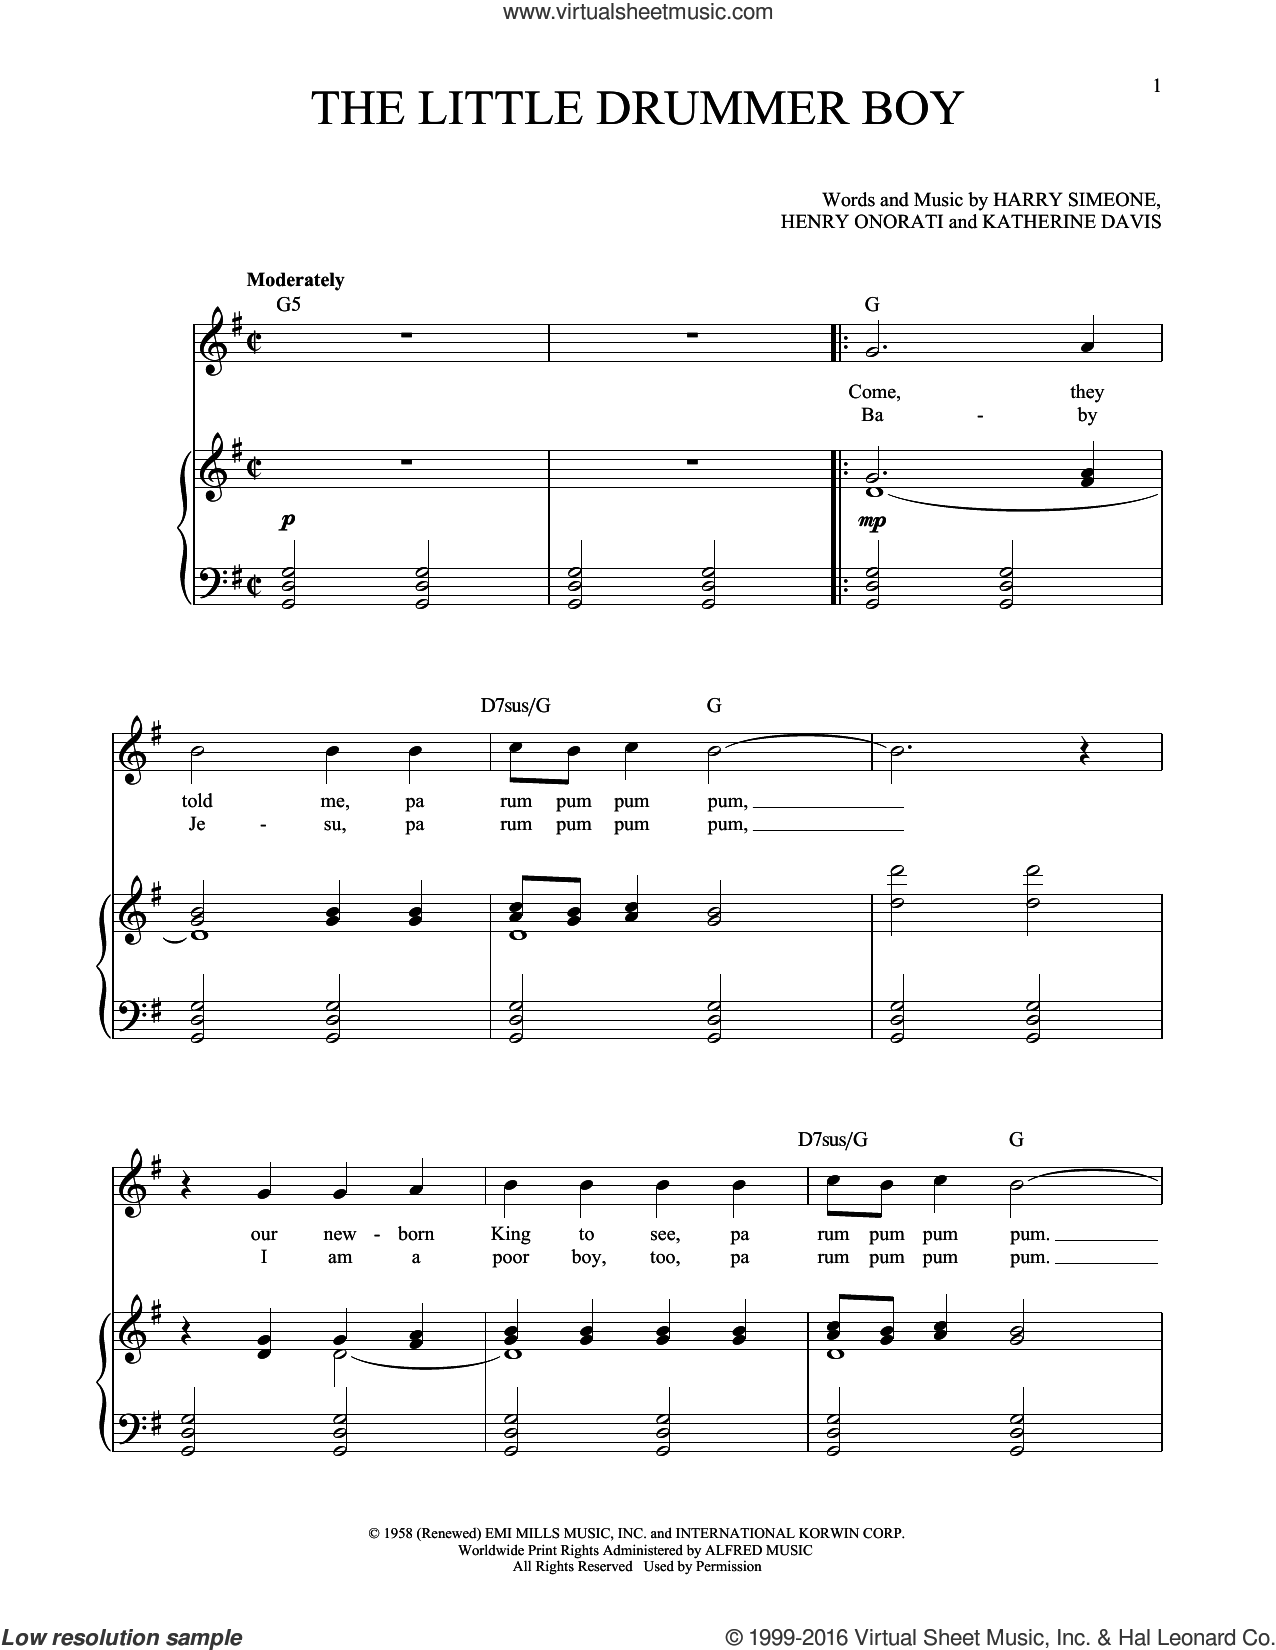 The Little Drummer Boy sheet music for voice and piano (High ) by Katherine Davis, Richard Walters, Harry Simeone and Henry Onorati, intermediate. Score Image Preview.